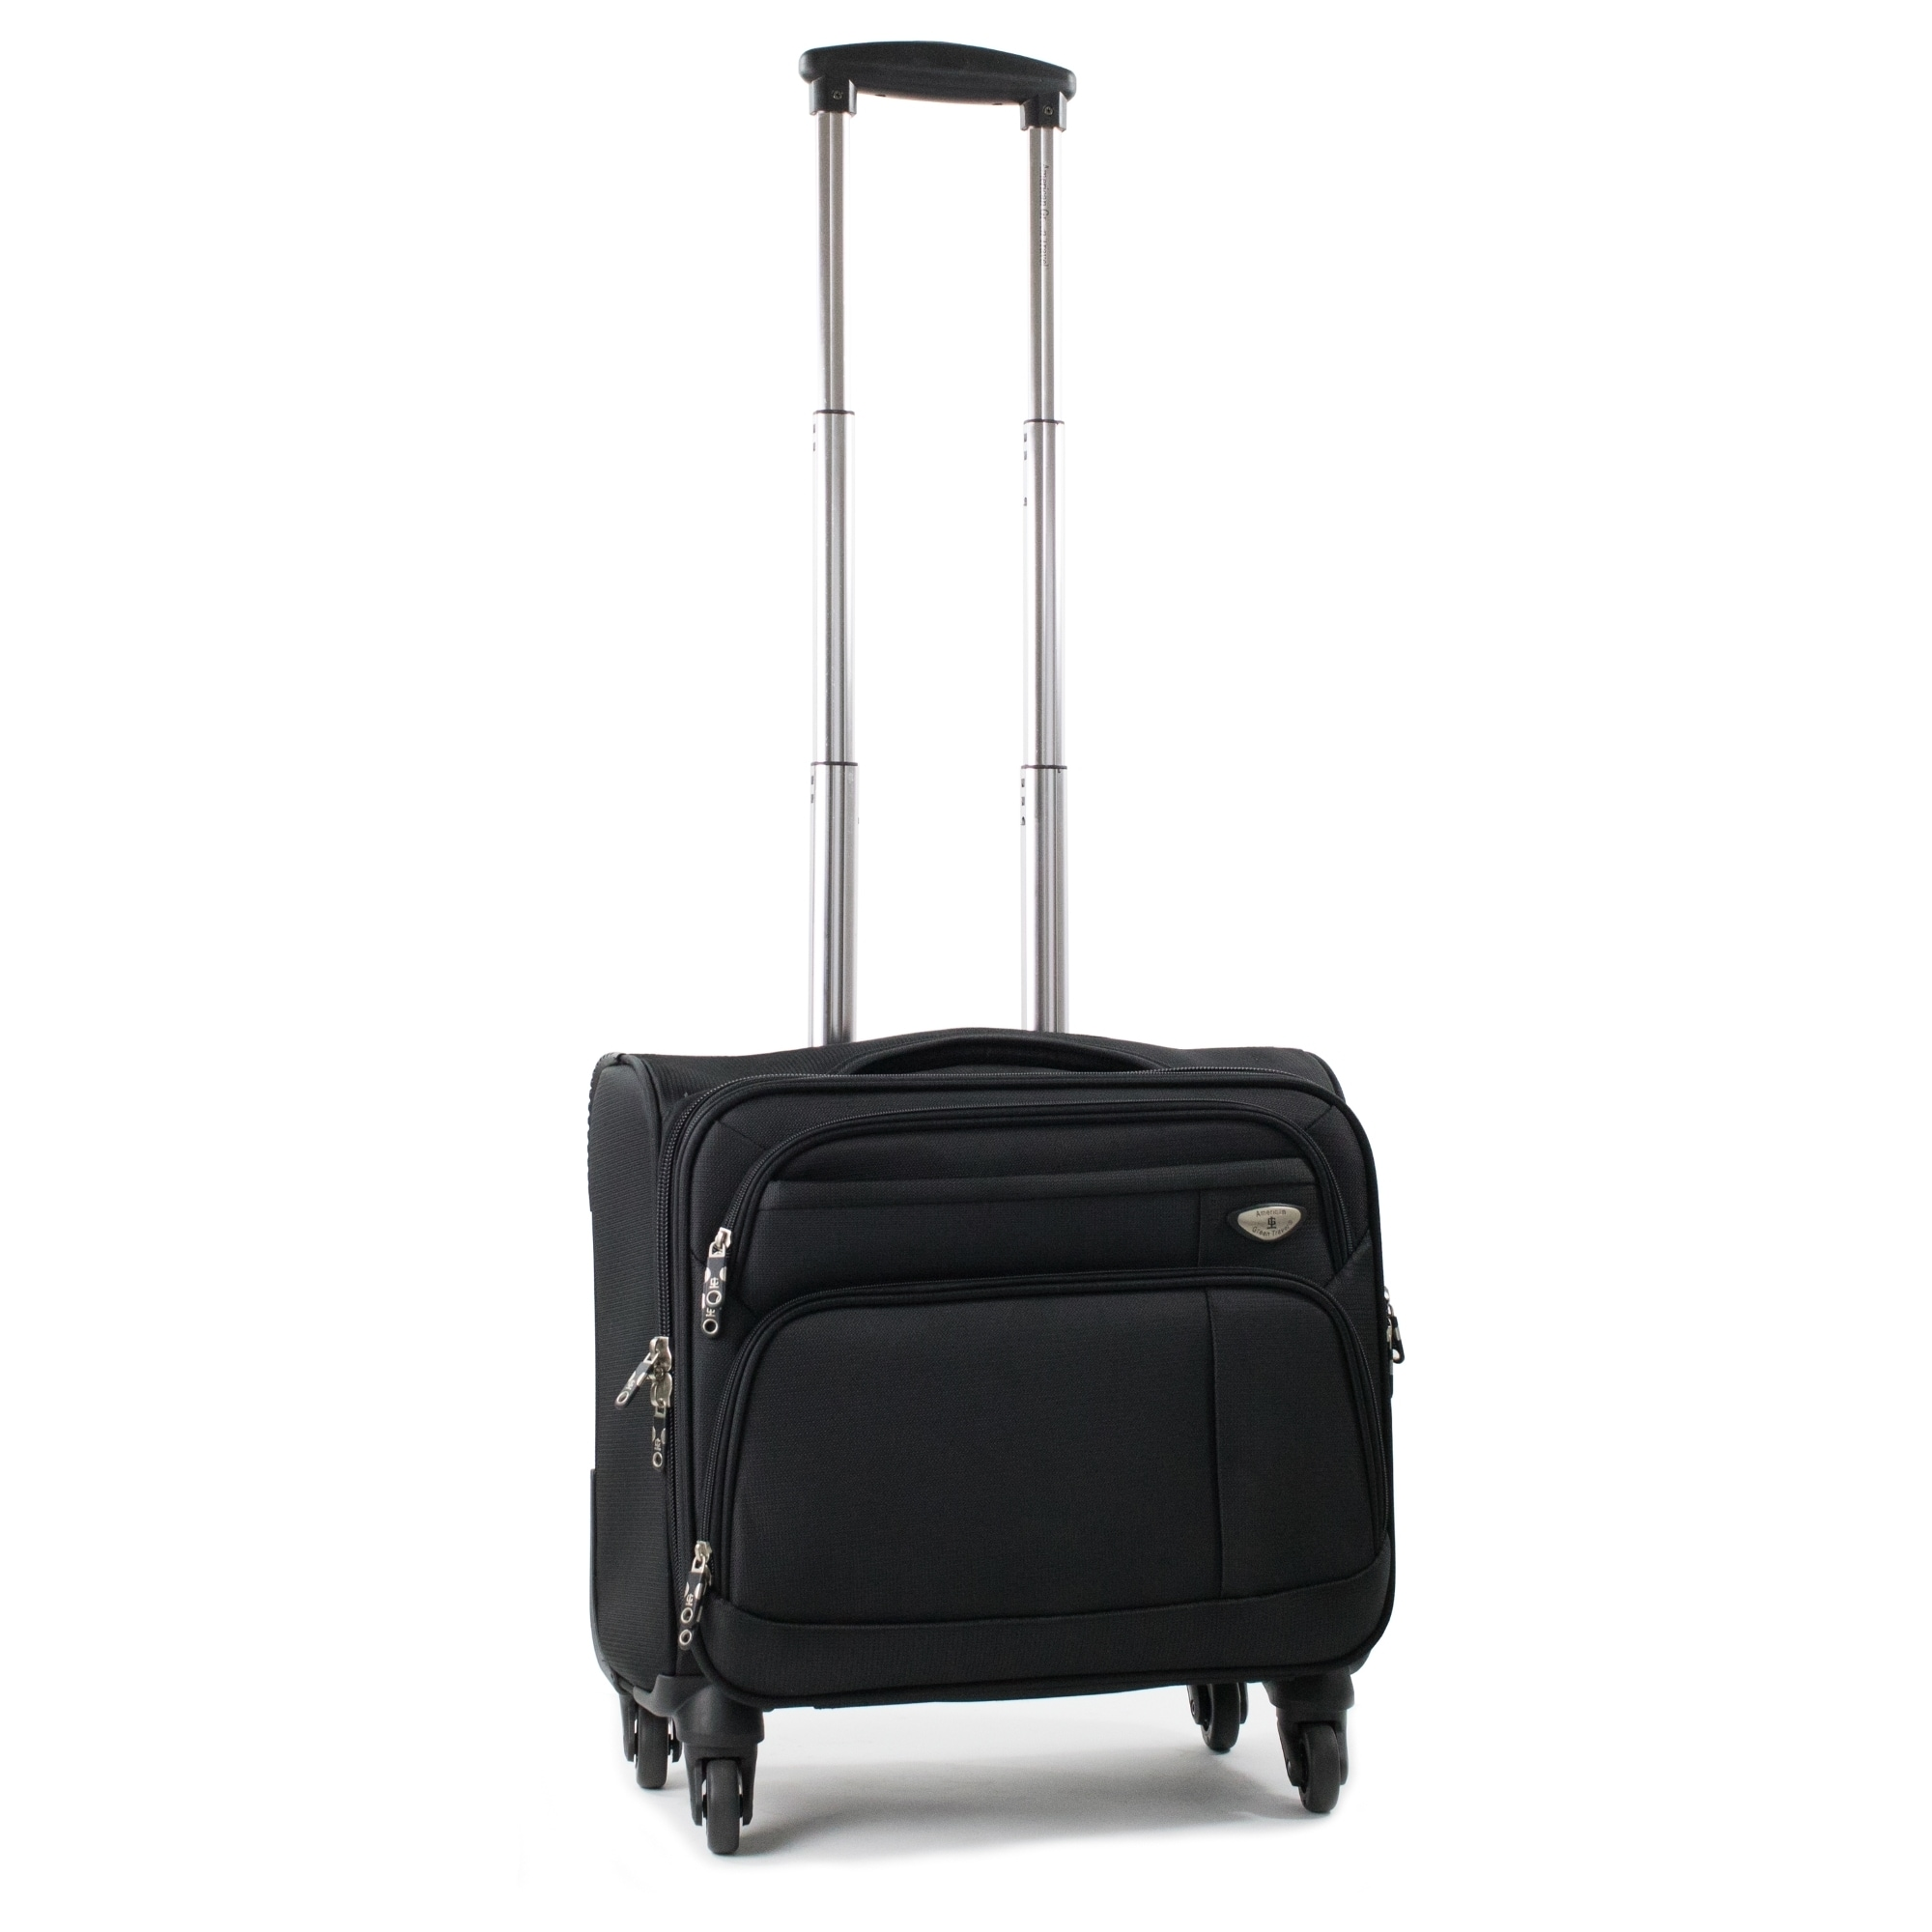 American Green Travel Carry On 17-inch Laptop Spinner Briefcase by American Green Travel